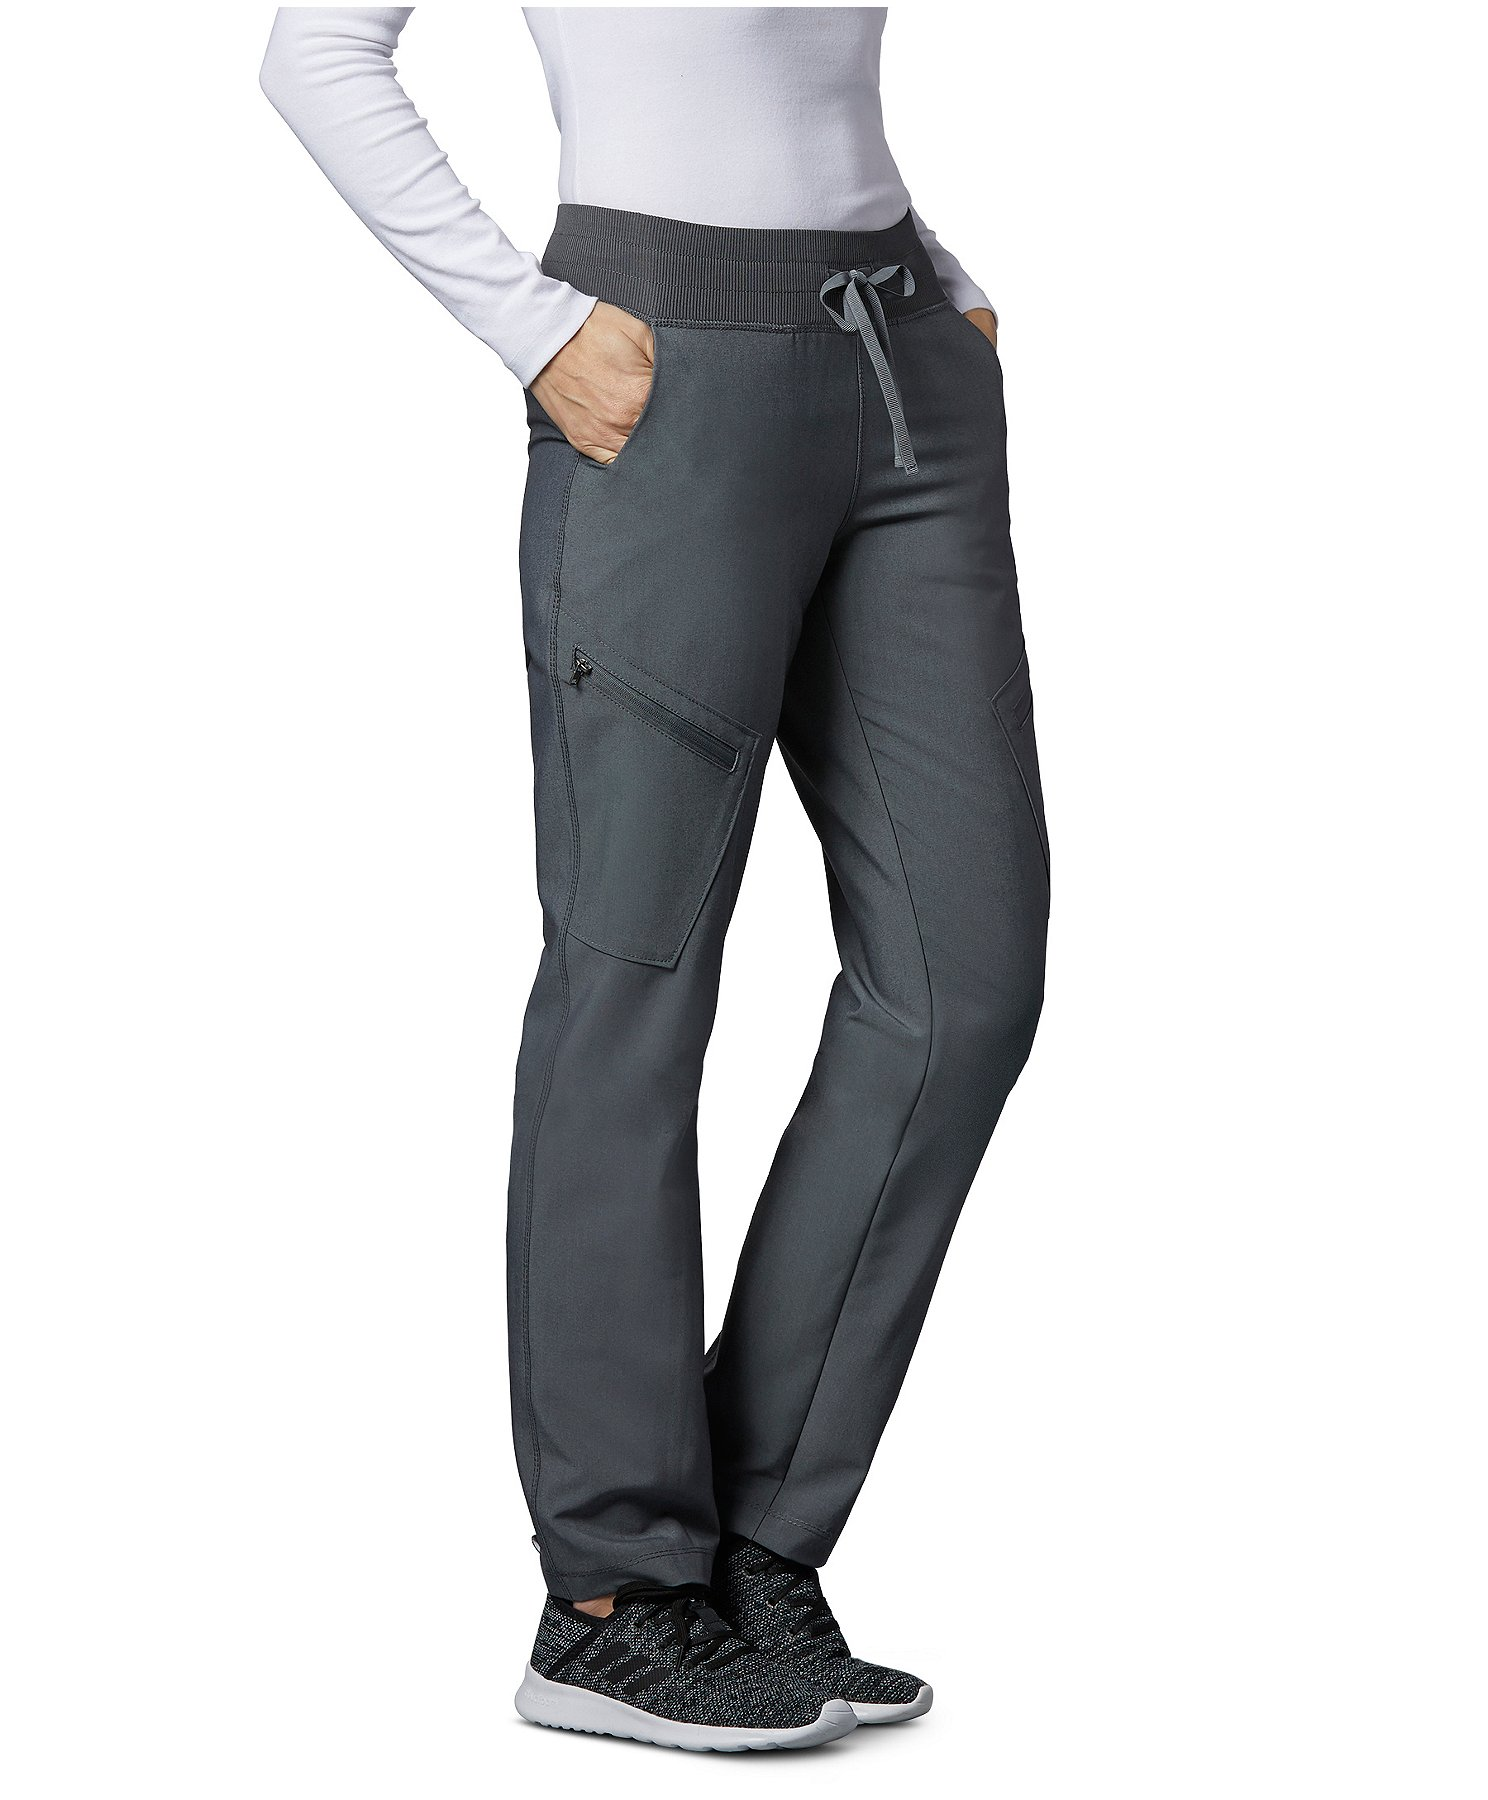 Women S Easy Fit Slim Leg Pants Mark S Whether you're buying your first pair of premium denim jeans or adding to your closet full of luxe fabrics shop for the right pair of trousers that complement your look and your life. women s easy fit slim leg pants